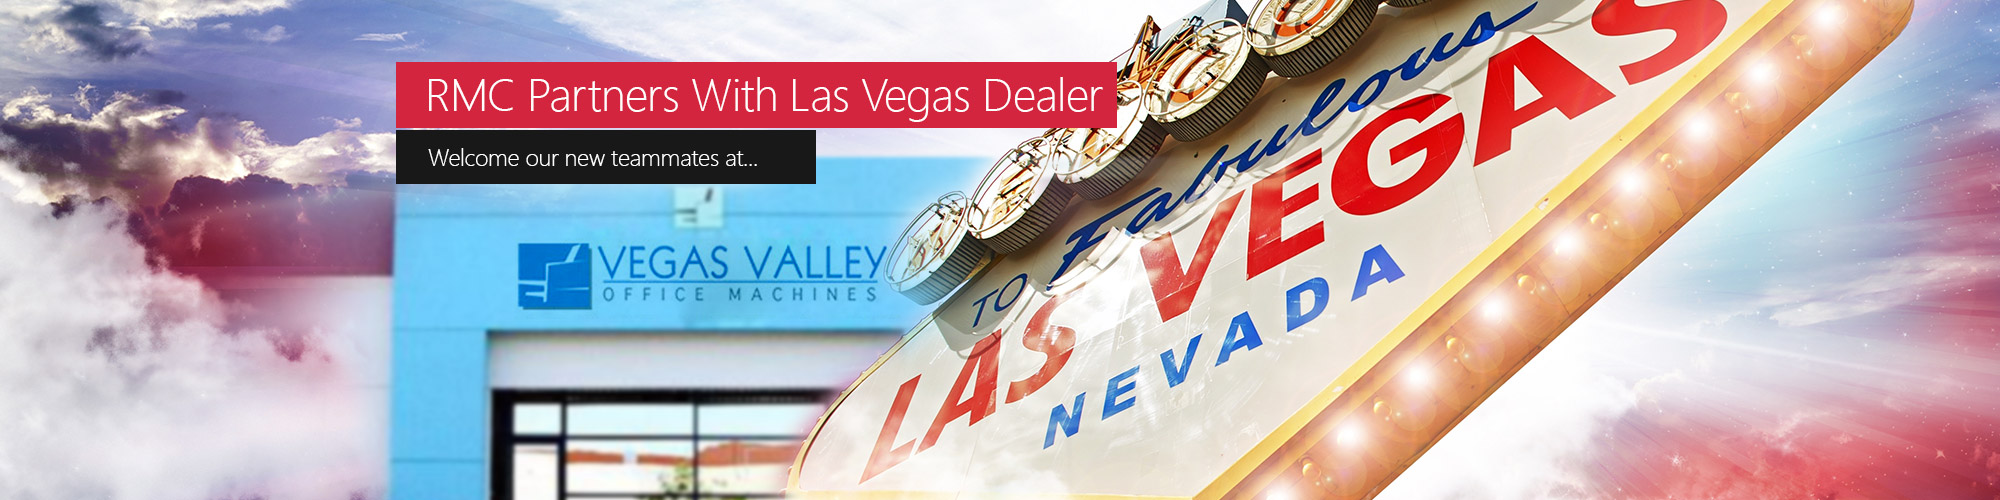 Ray Morgan Acquires Las Vegas Office Machines